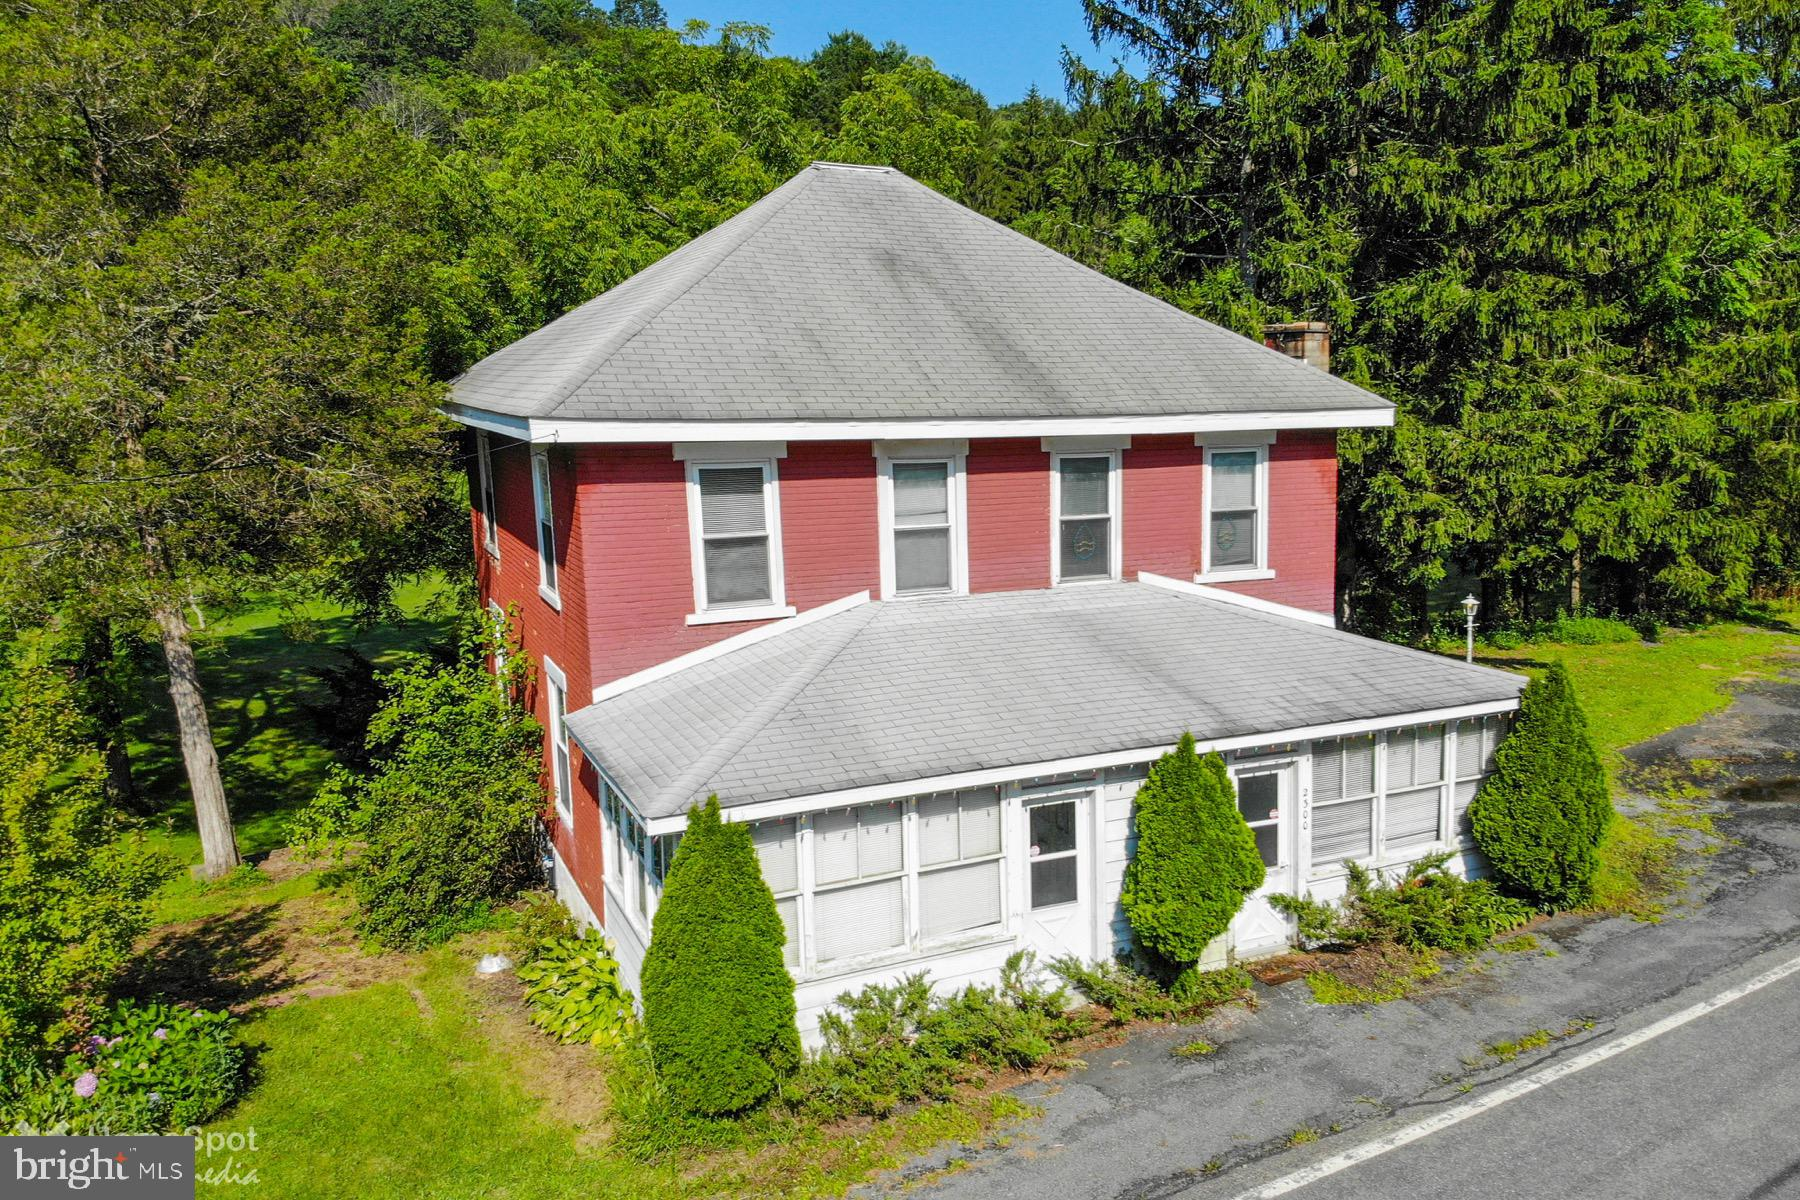 2300 SPRUCE HOLLOW ROAD, PALMERTON, PA 18071